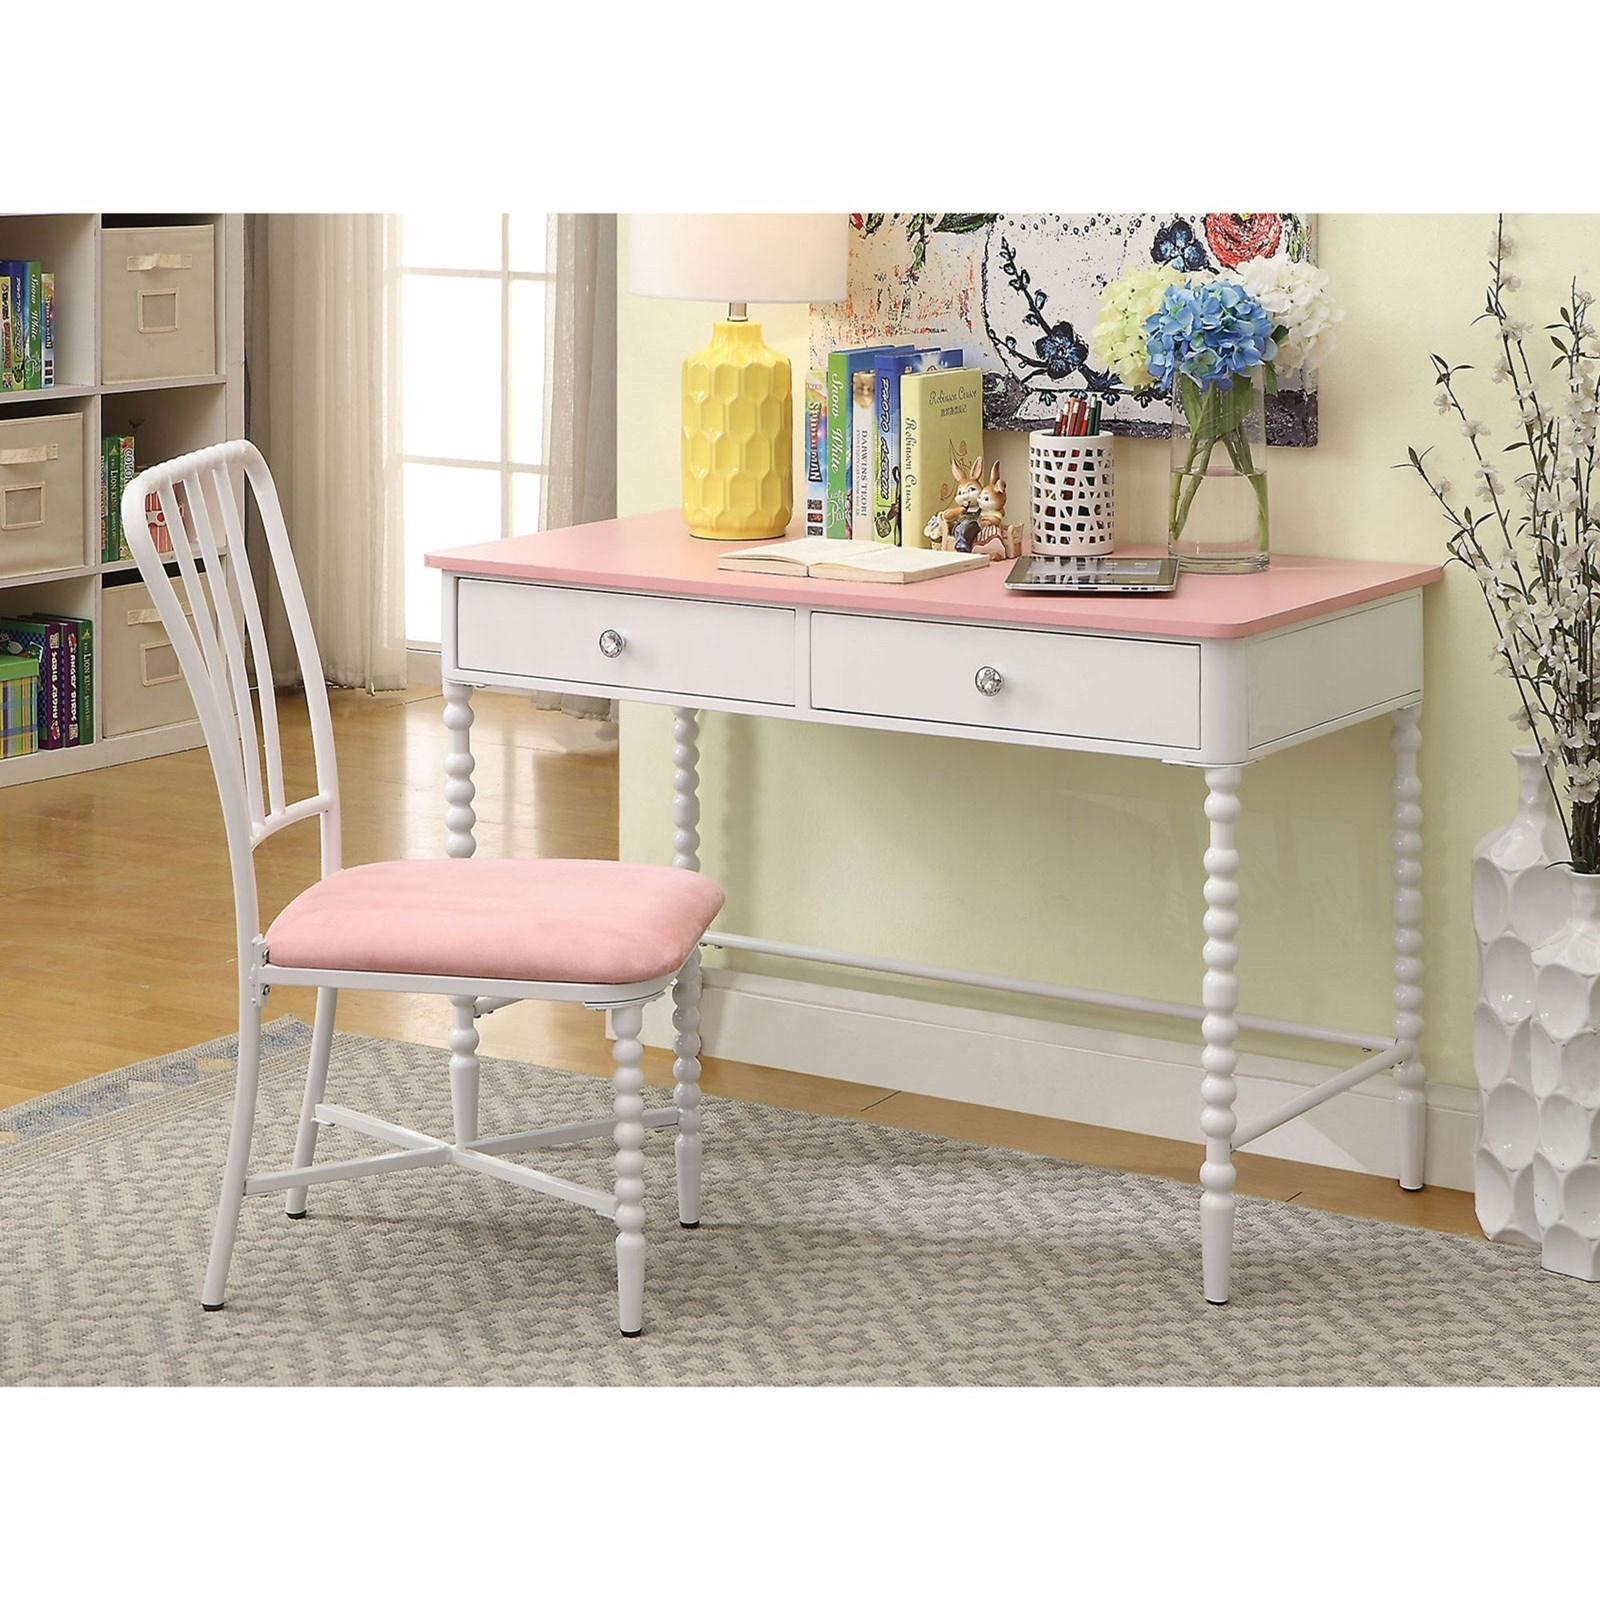 Desk And Chair Set Coco Desk And Chair Set With 2 Drawers By Furniture Of America At Rooms For Less